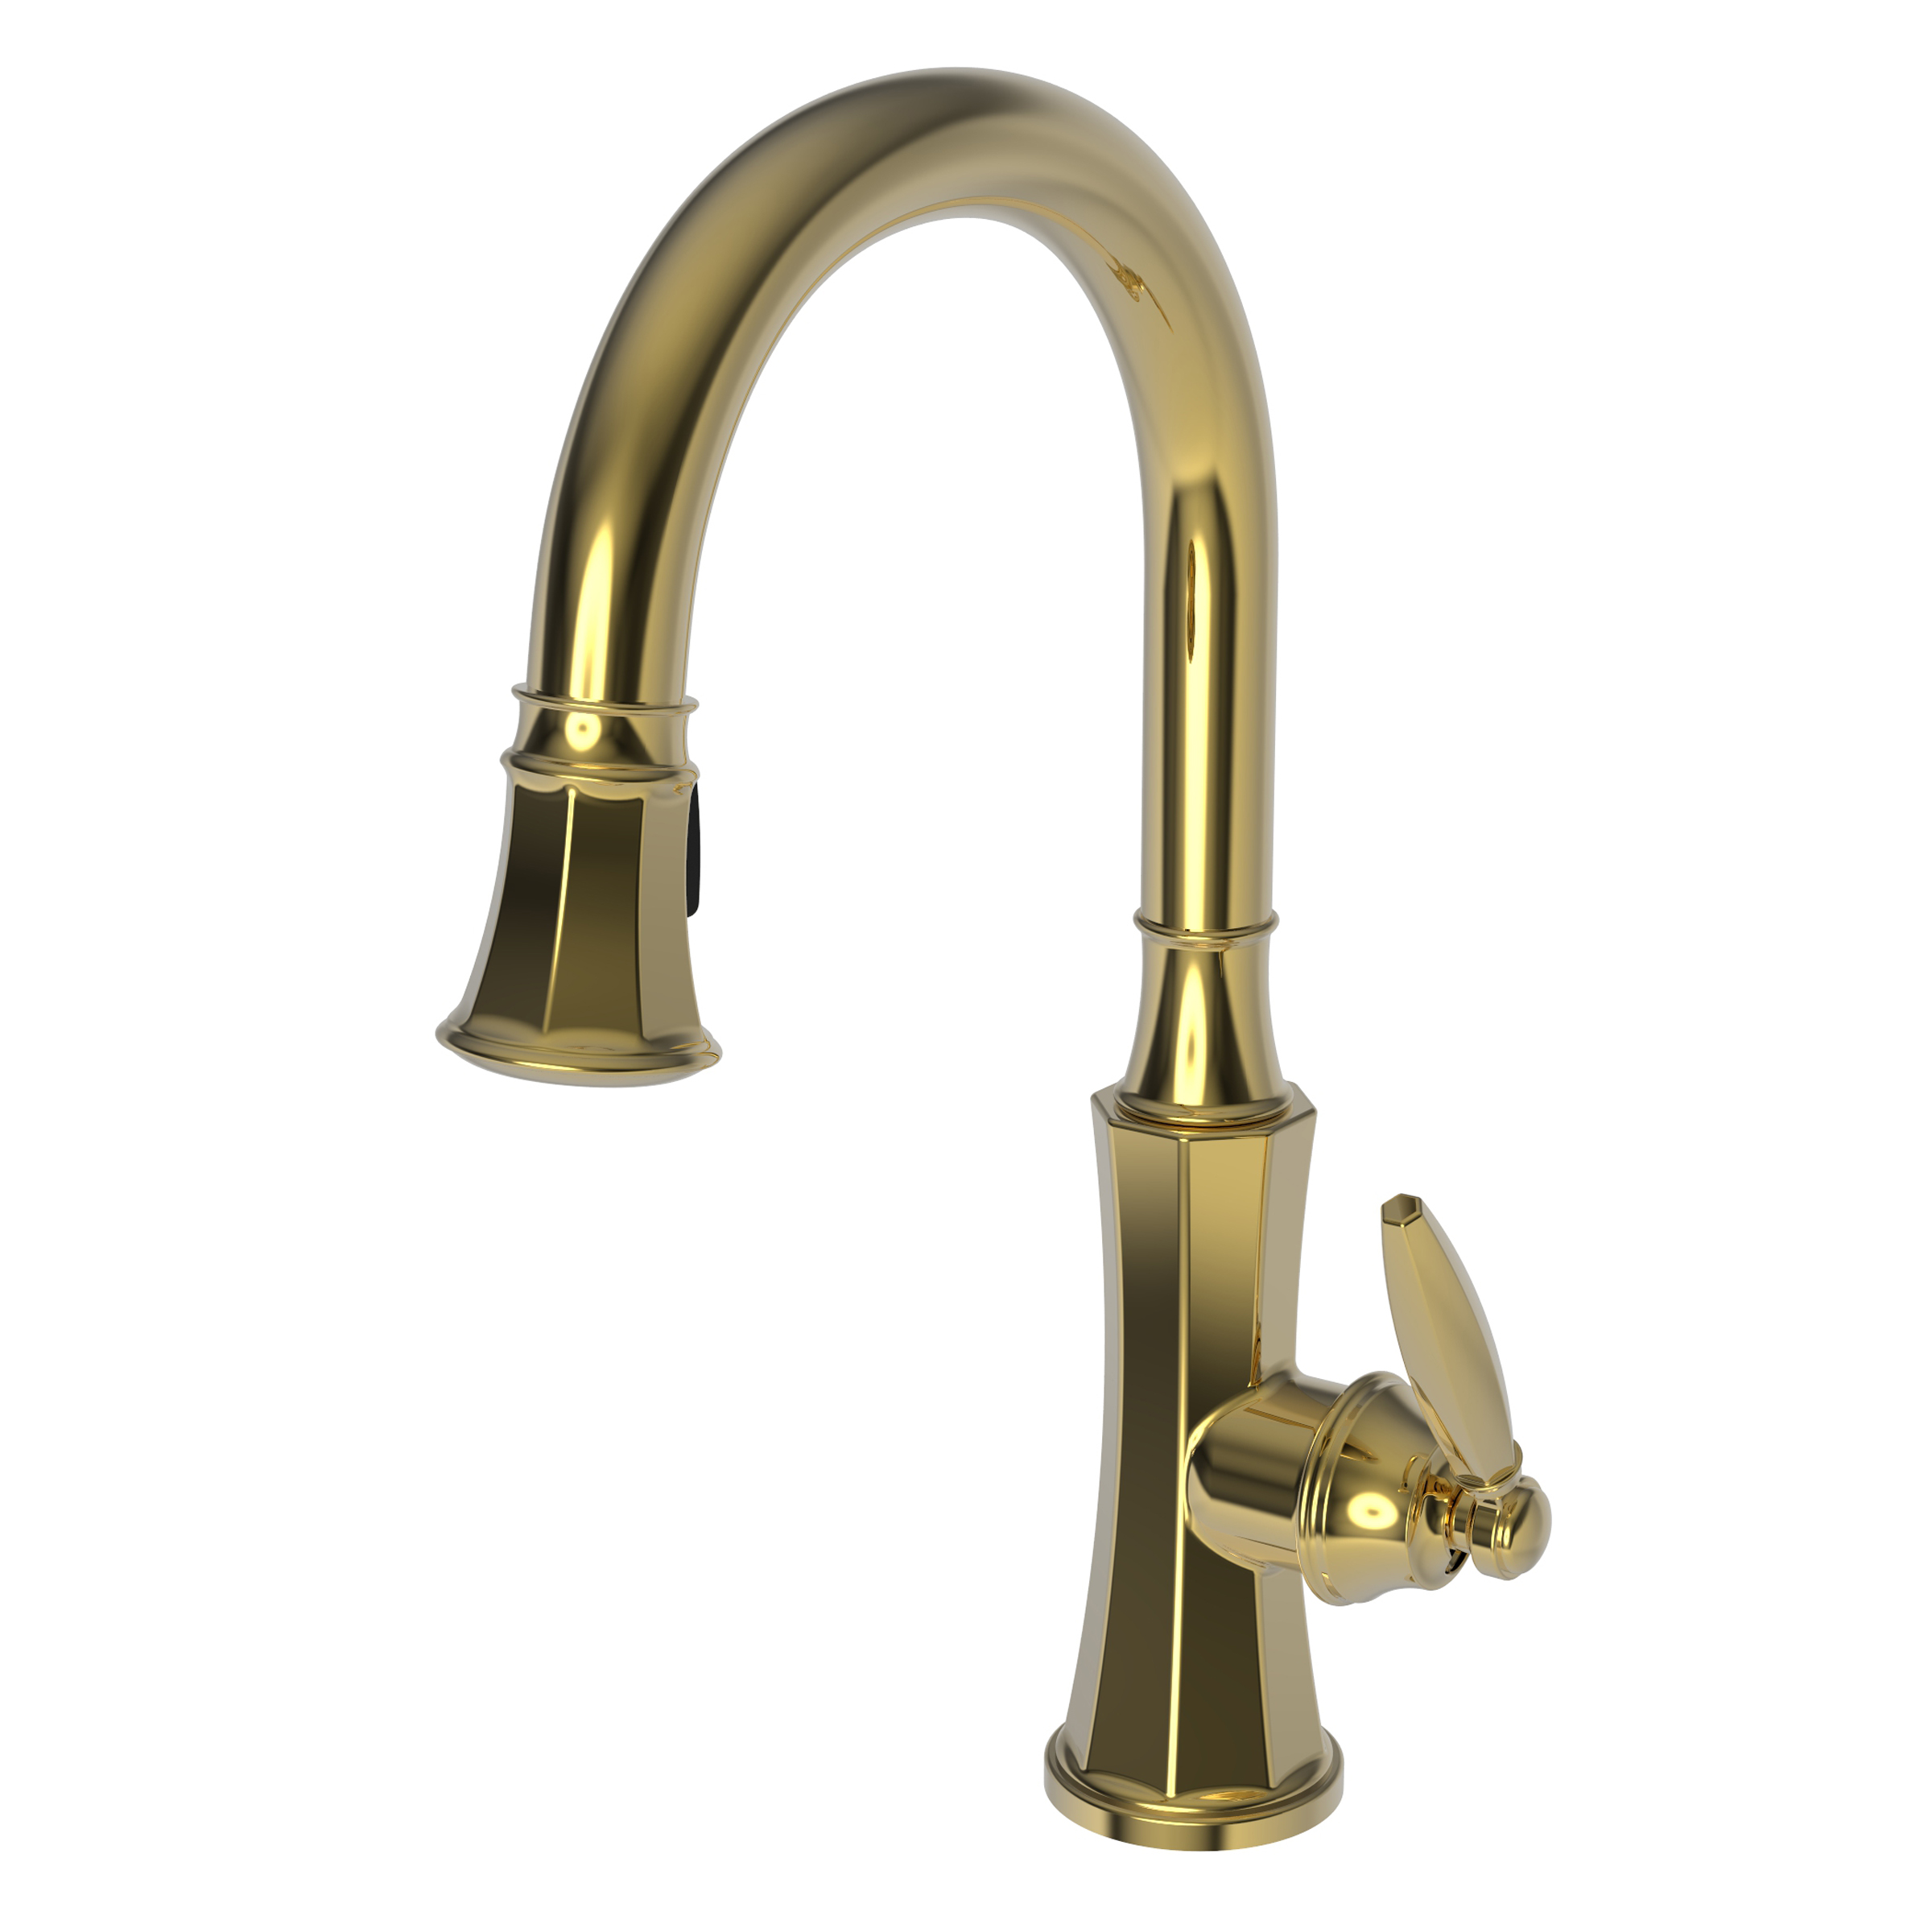 Newport Brass 1200 5103 Metropole 1200 5103 Pull Down Kitchen Faucet Newport Brass Faucets